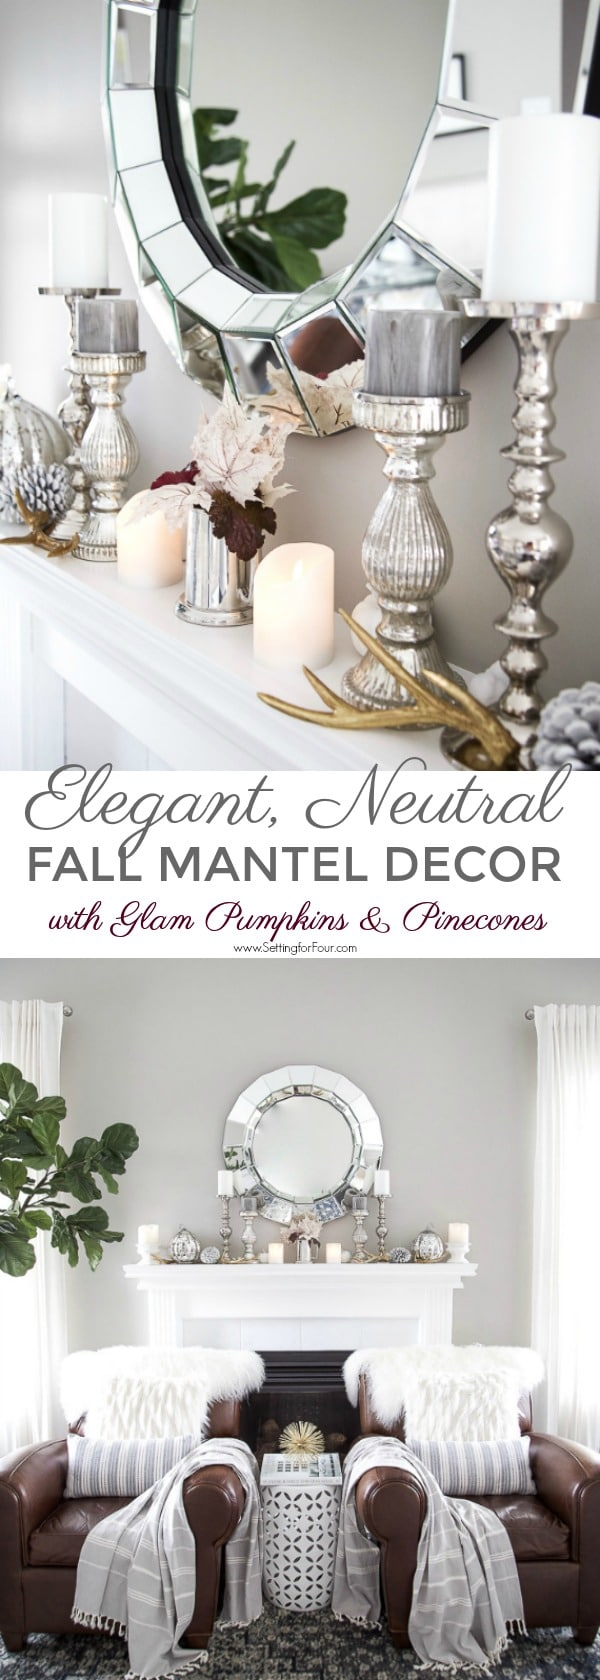 Elegant, Neutral Fall Mantel Decor Ideas with glam pumpkins & pinecones #fall #autumn #fireplace #mantel #decor #decorations #pumpkin #pinecones #leaves #candles #livingroom